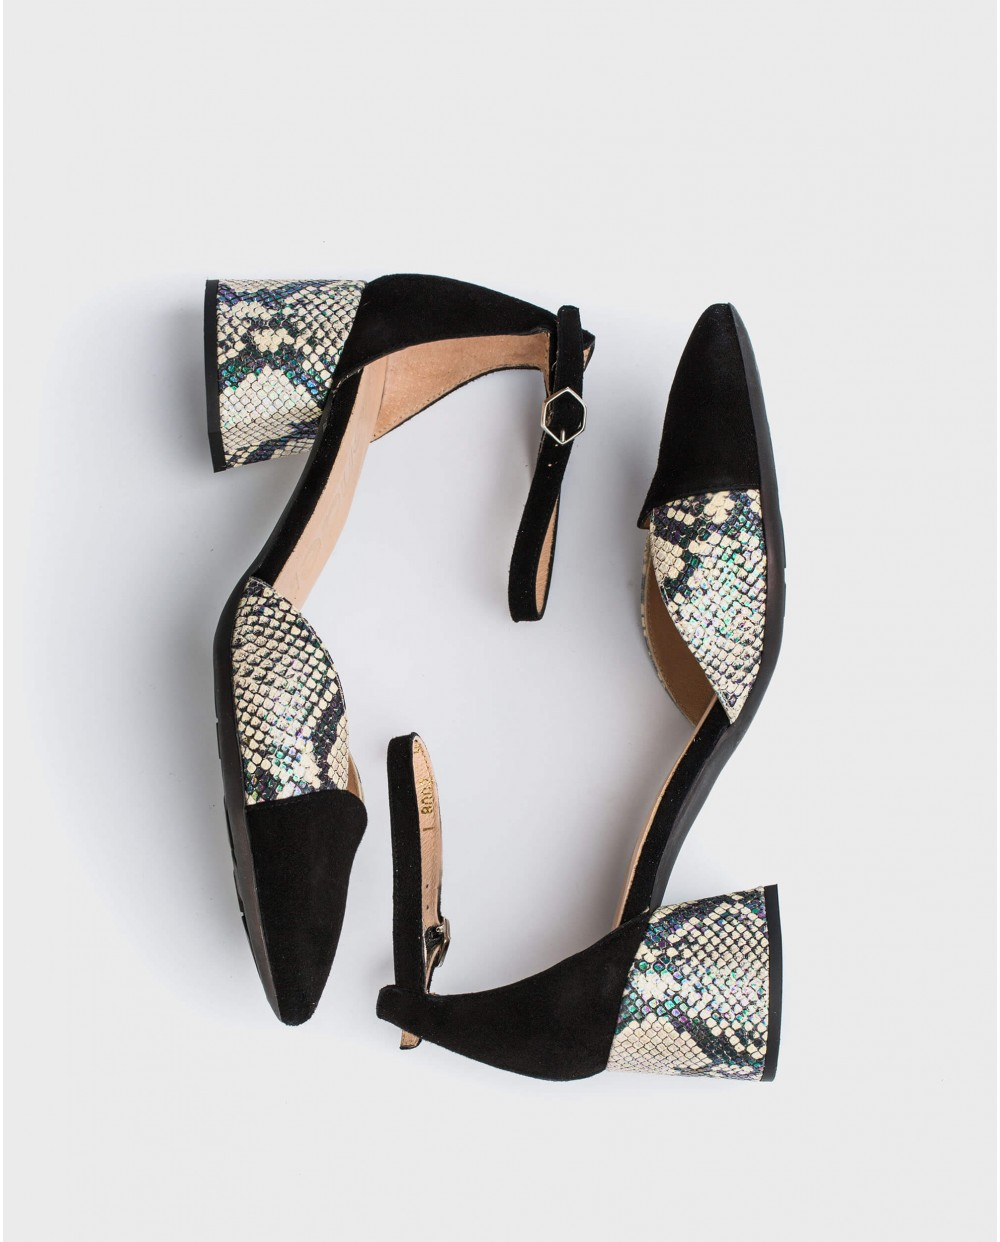 Wonders-Outlet-High heeled shoe with ankle strap